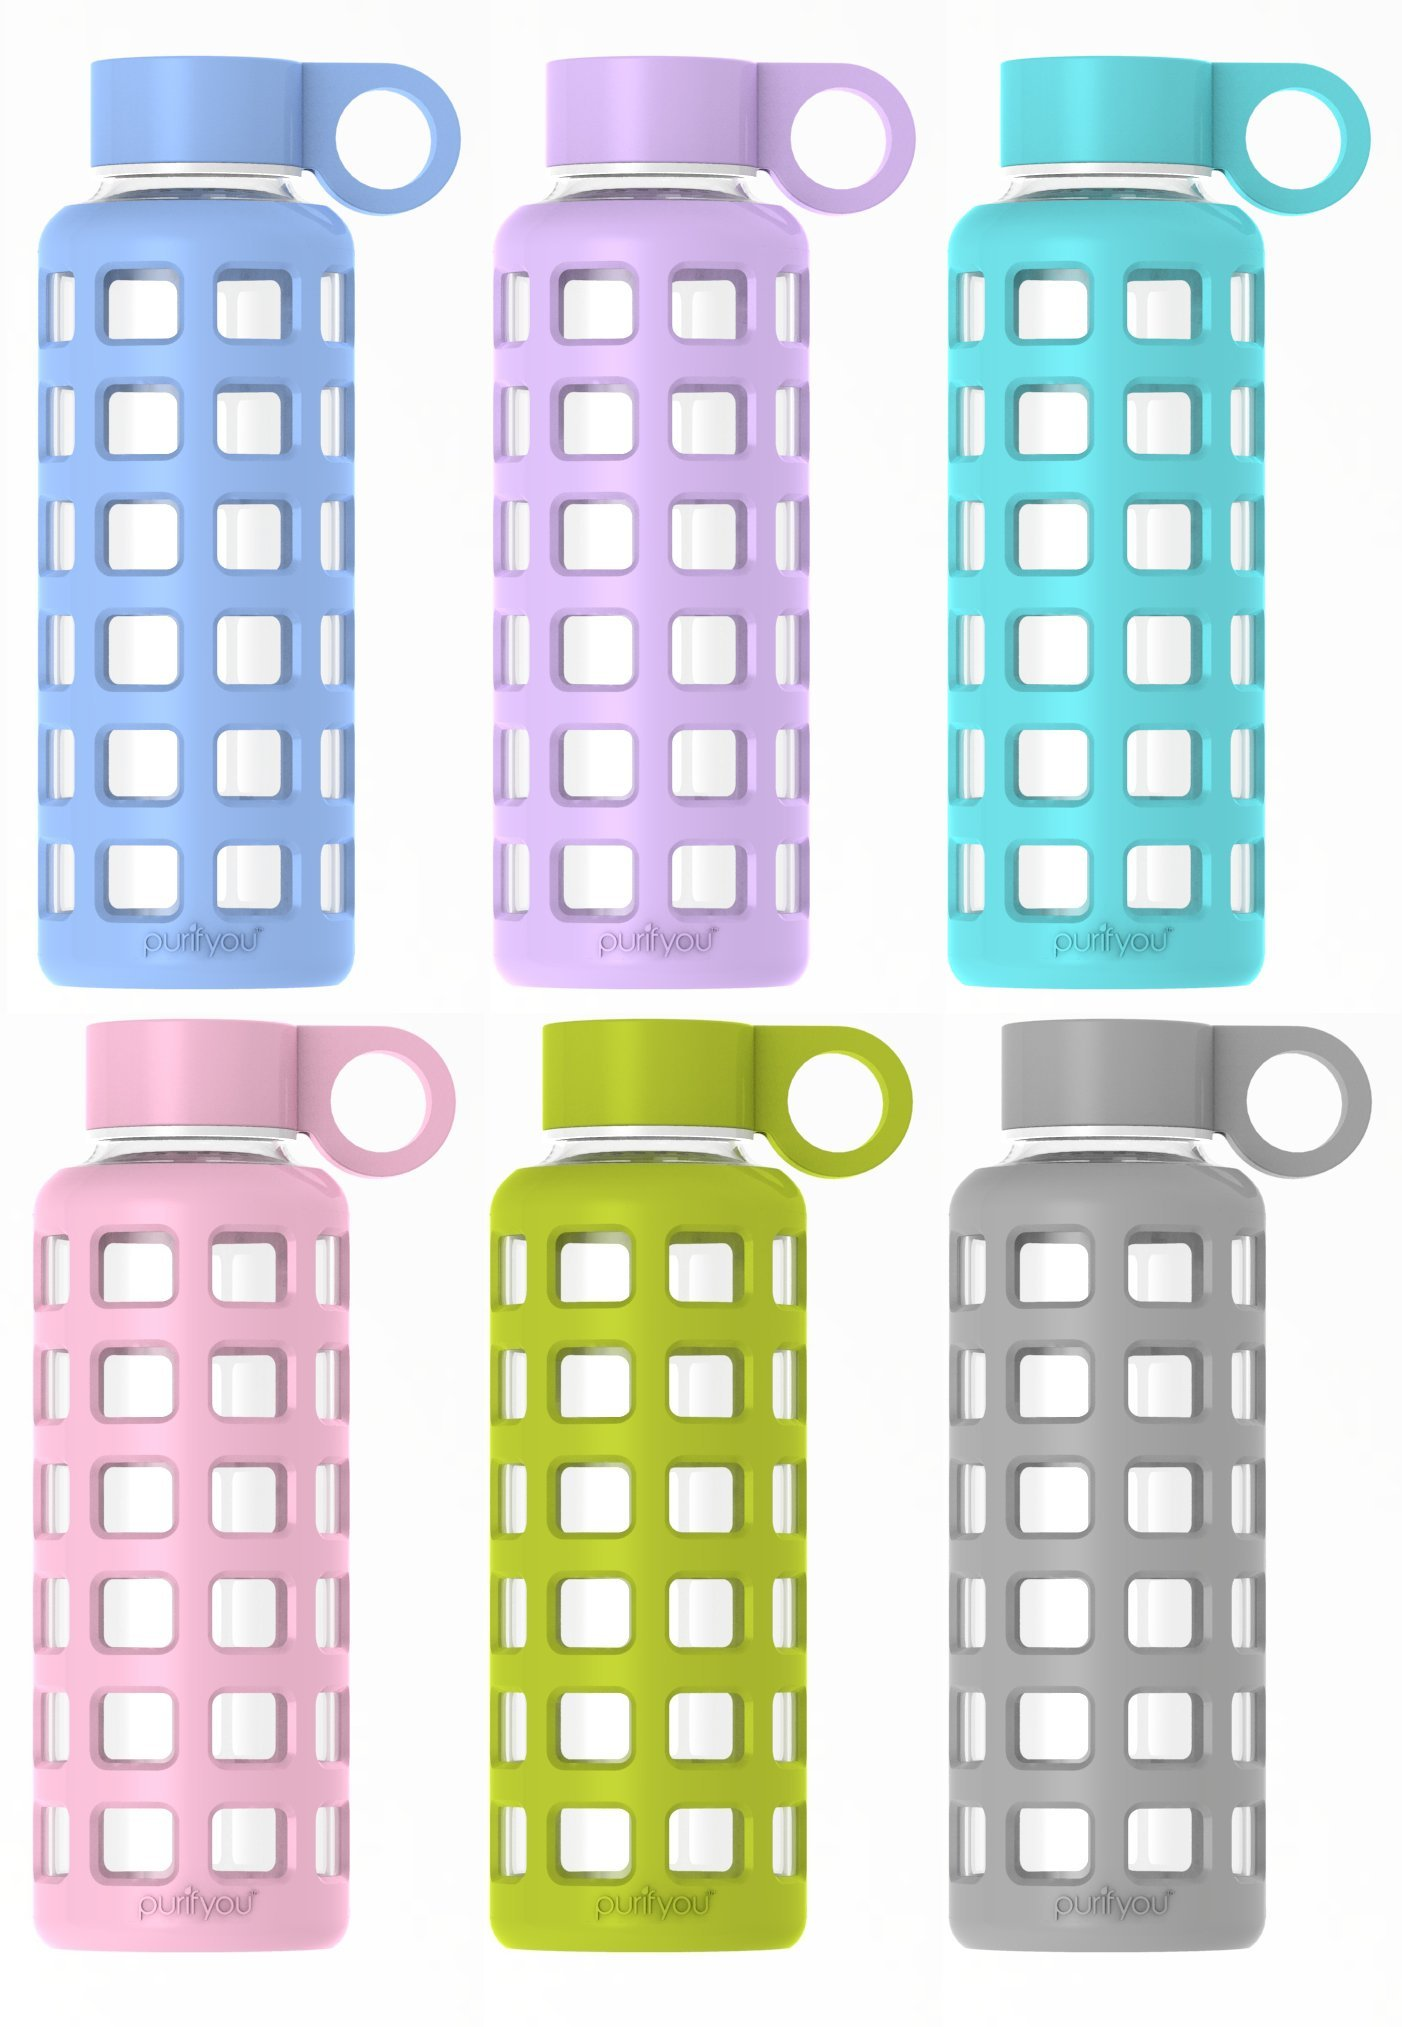 purifyou Premium Glass Water Bottle with Silicone Sleeve and Stainless Steel Lid, 12 / 22 / 32 oz (6 Pack, 22 oz) by purifyou (Image #1)